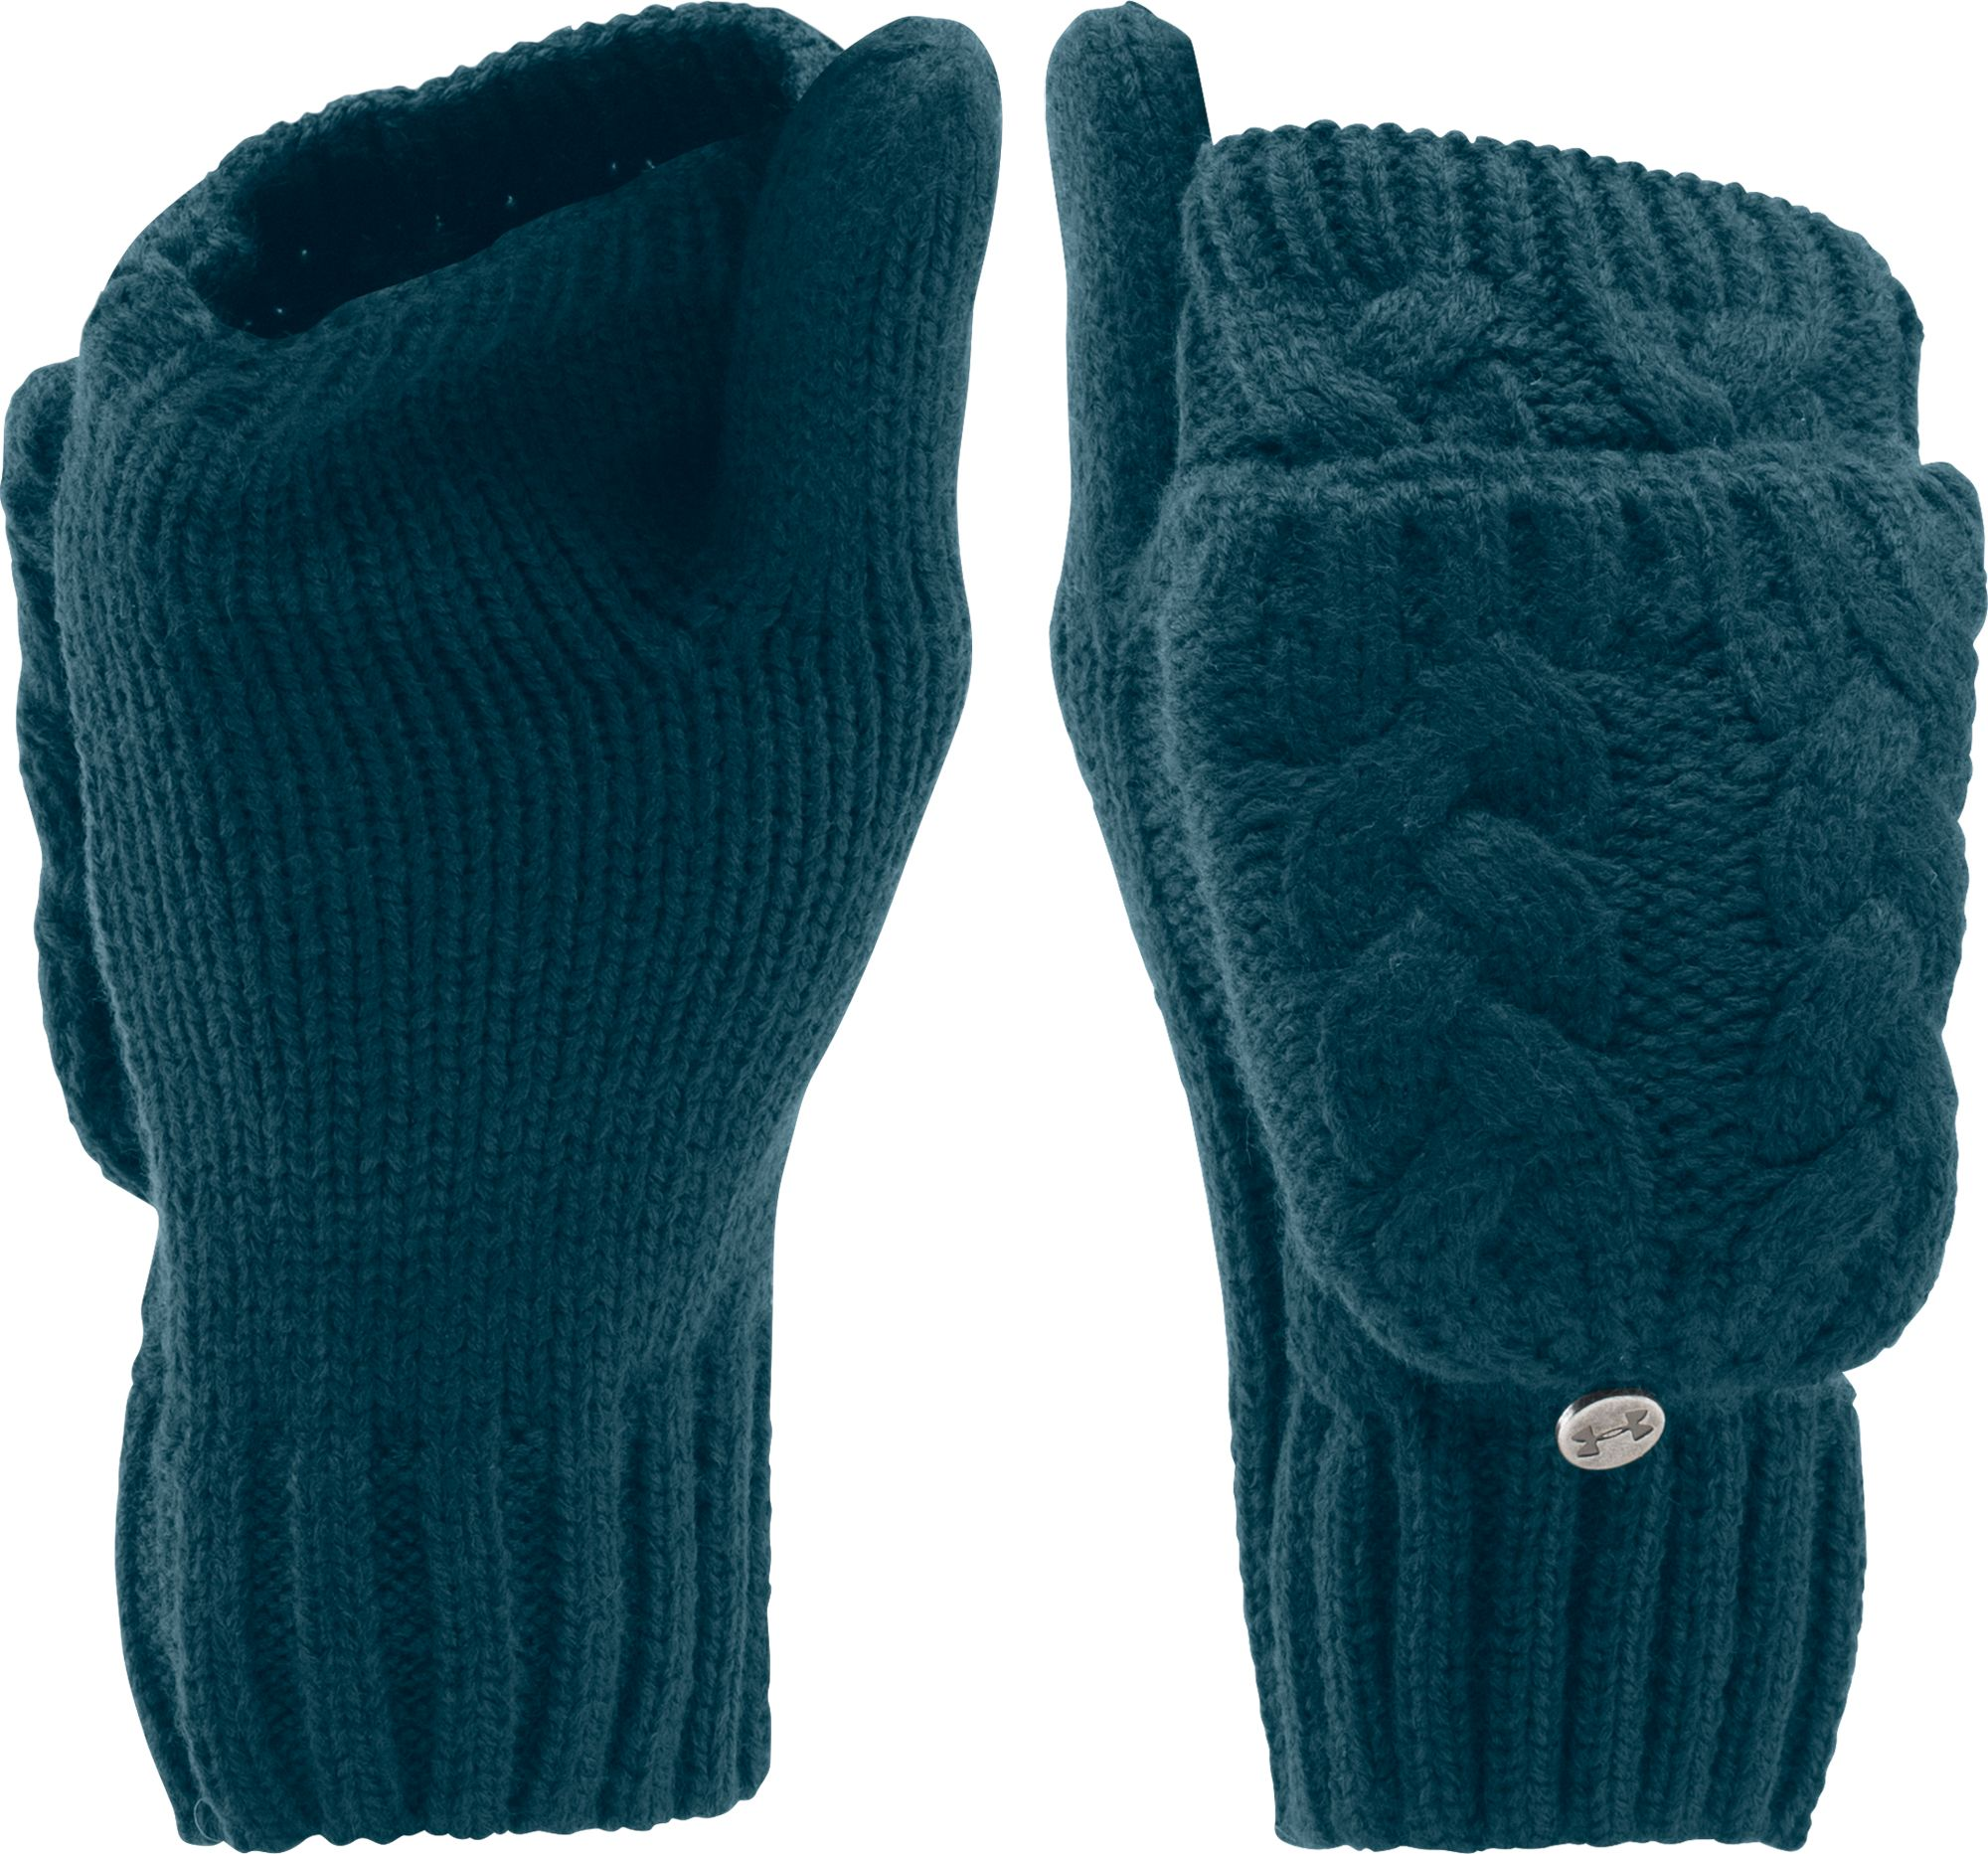 Womens leather ski gloves - Product Image Under Armour Women S Around Town Gloves